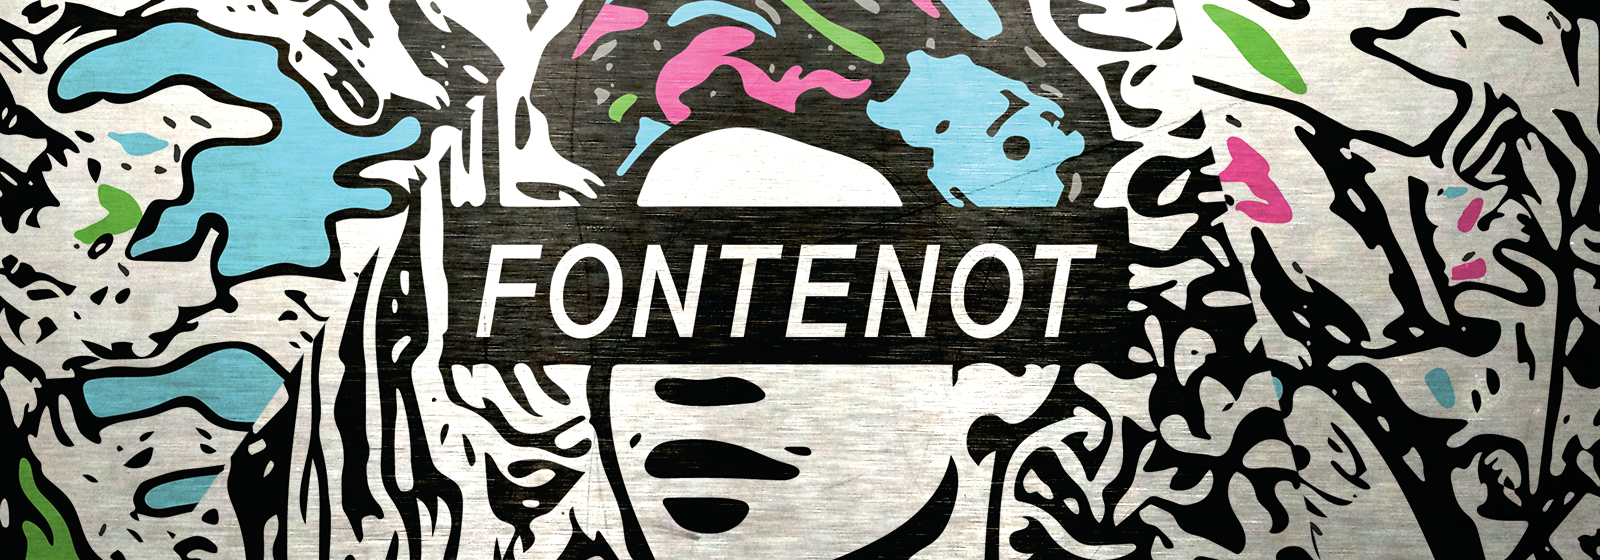 Andrew Fontenot Official Store Store